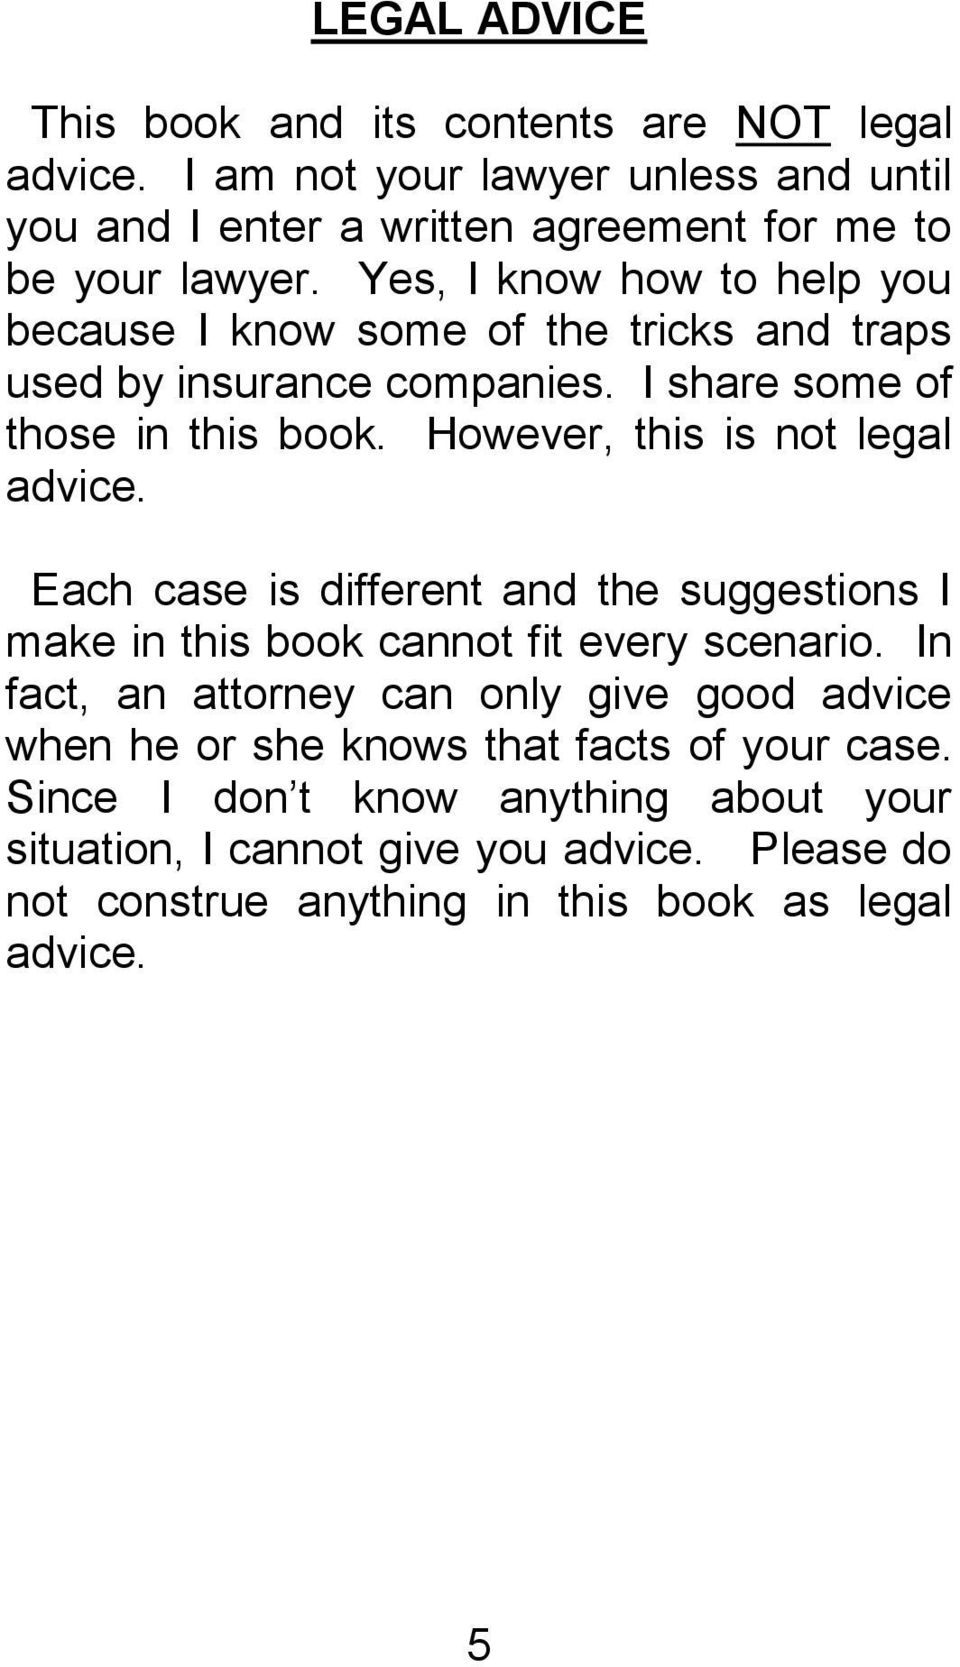 However, this is not legal advice. Each case is different and the suggestions I make in this book cannot fit every scenario.